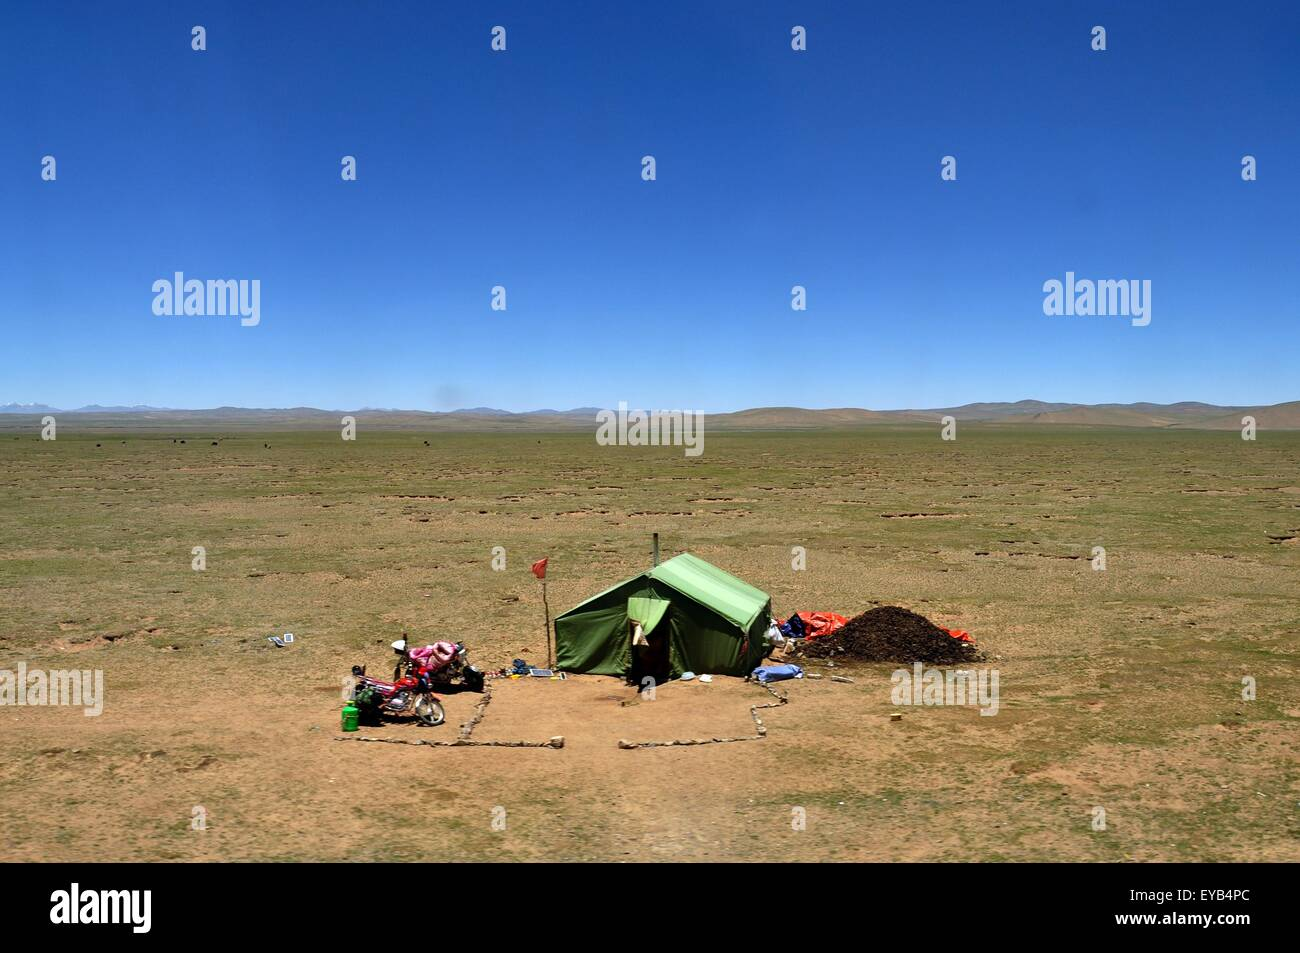 camping in the middle of the dessert in Tibet China - Stock Image